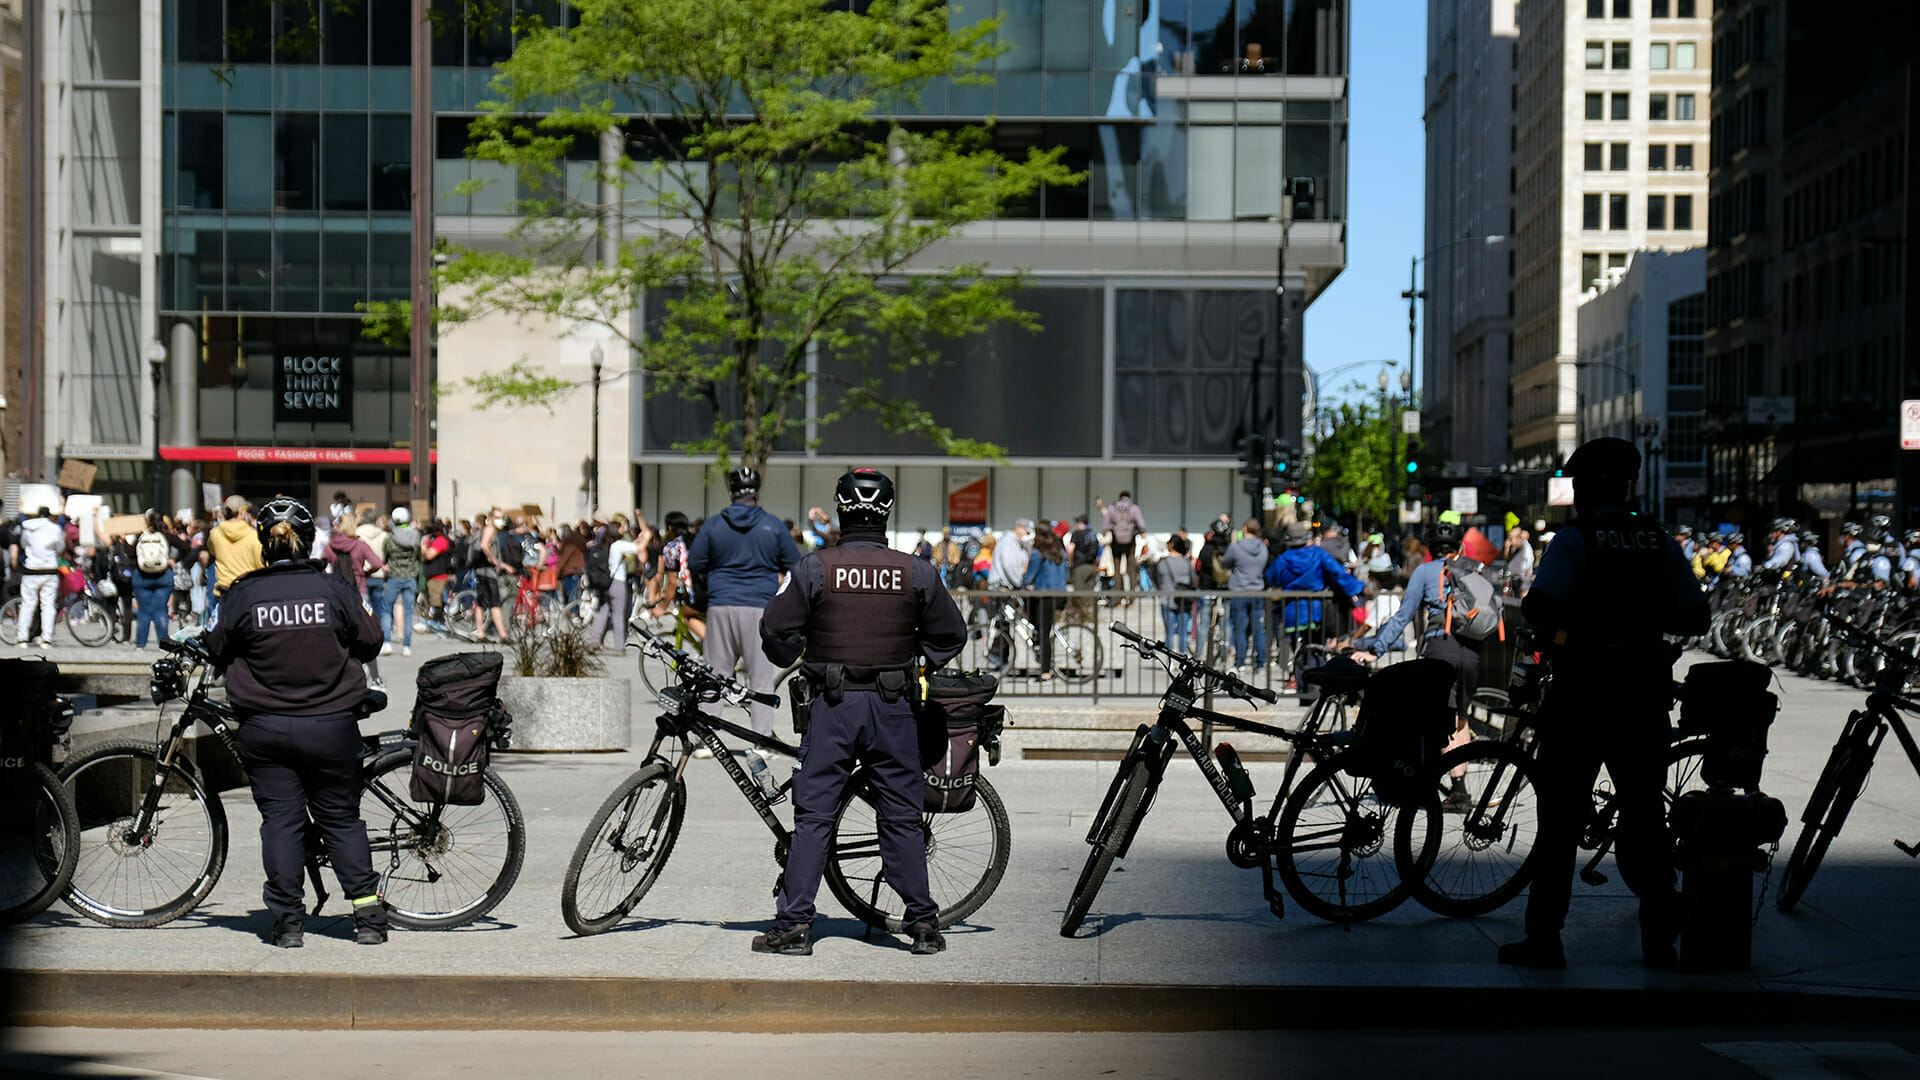 police prepare for election day civil unrest as a political protest moves through a downtown area during a moment of civil unres